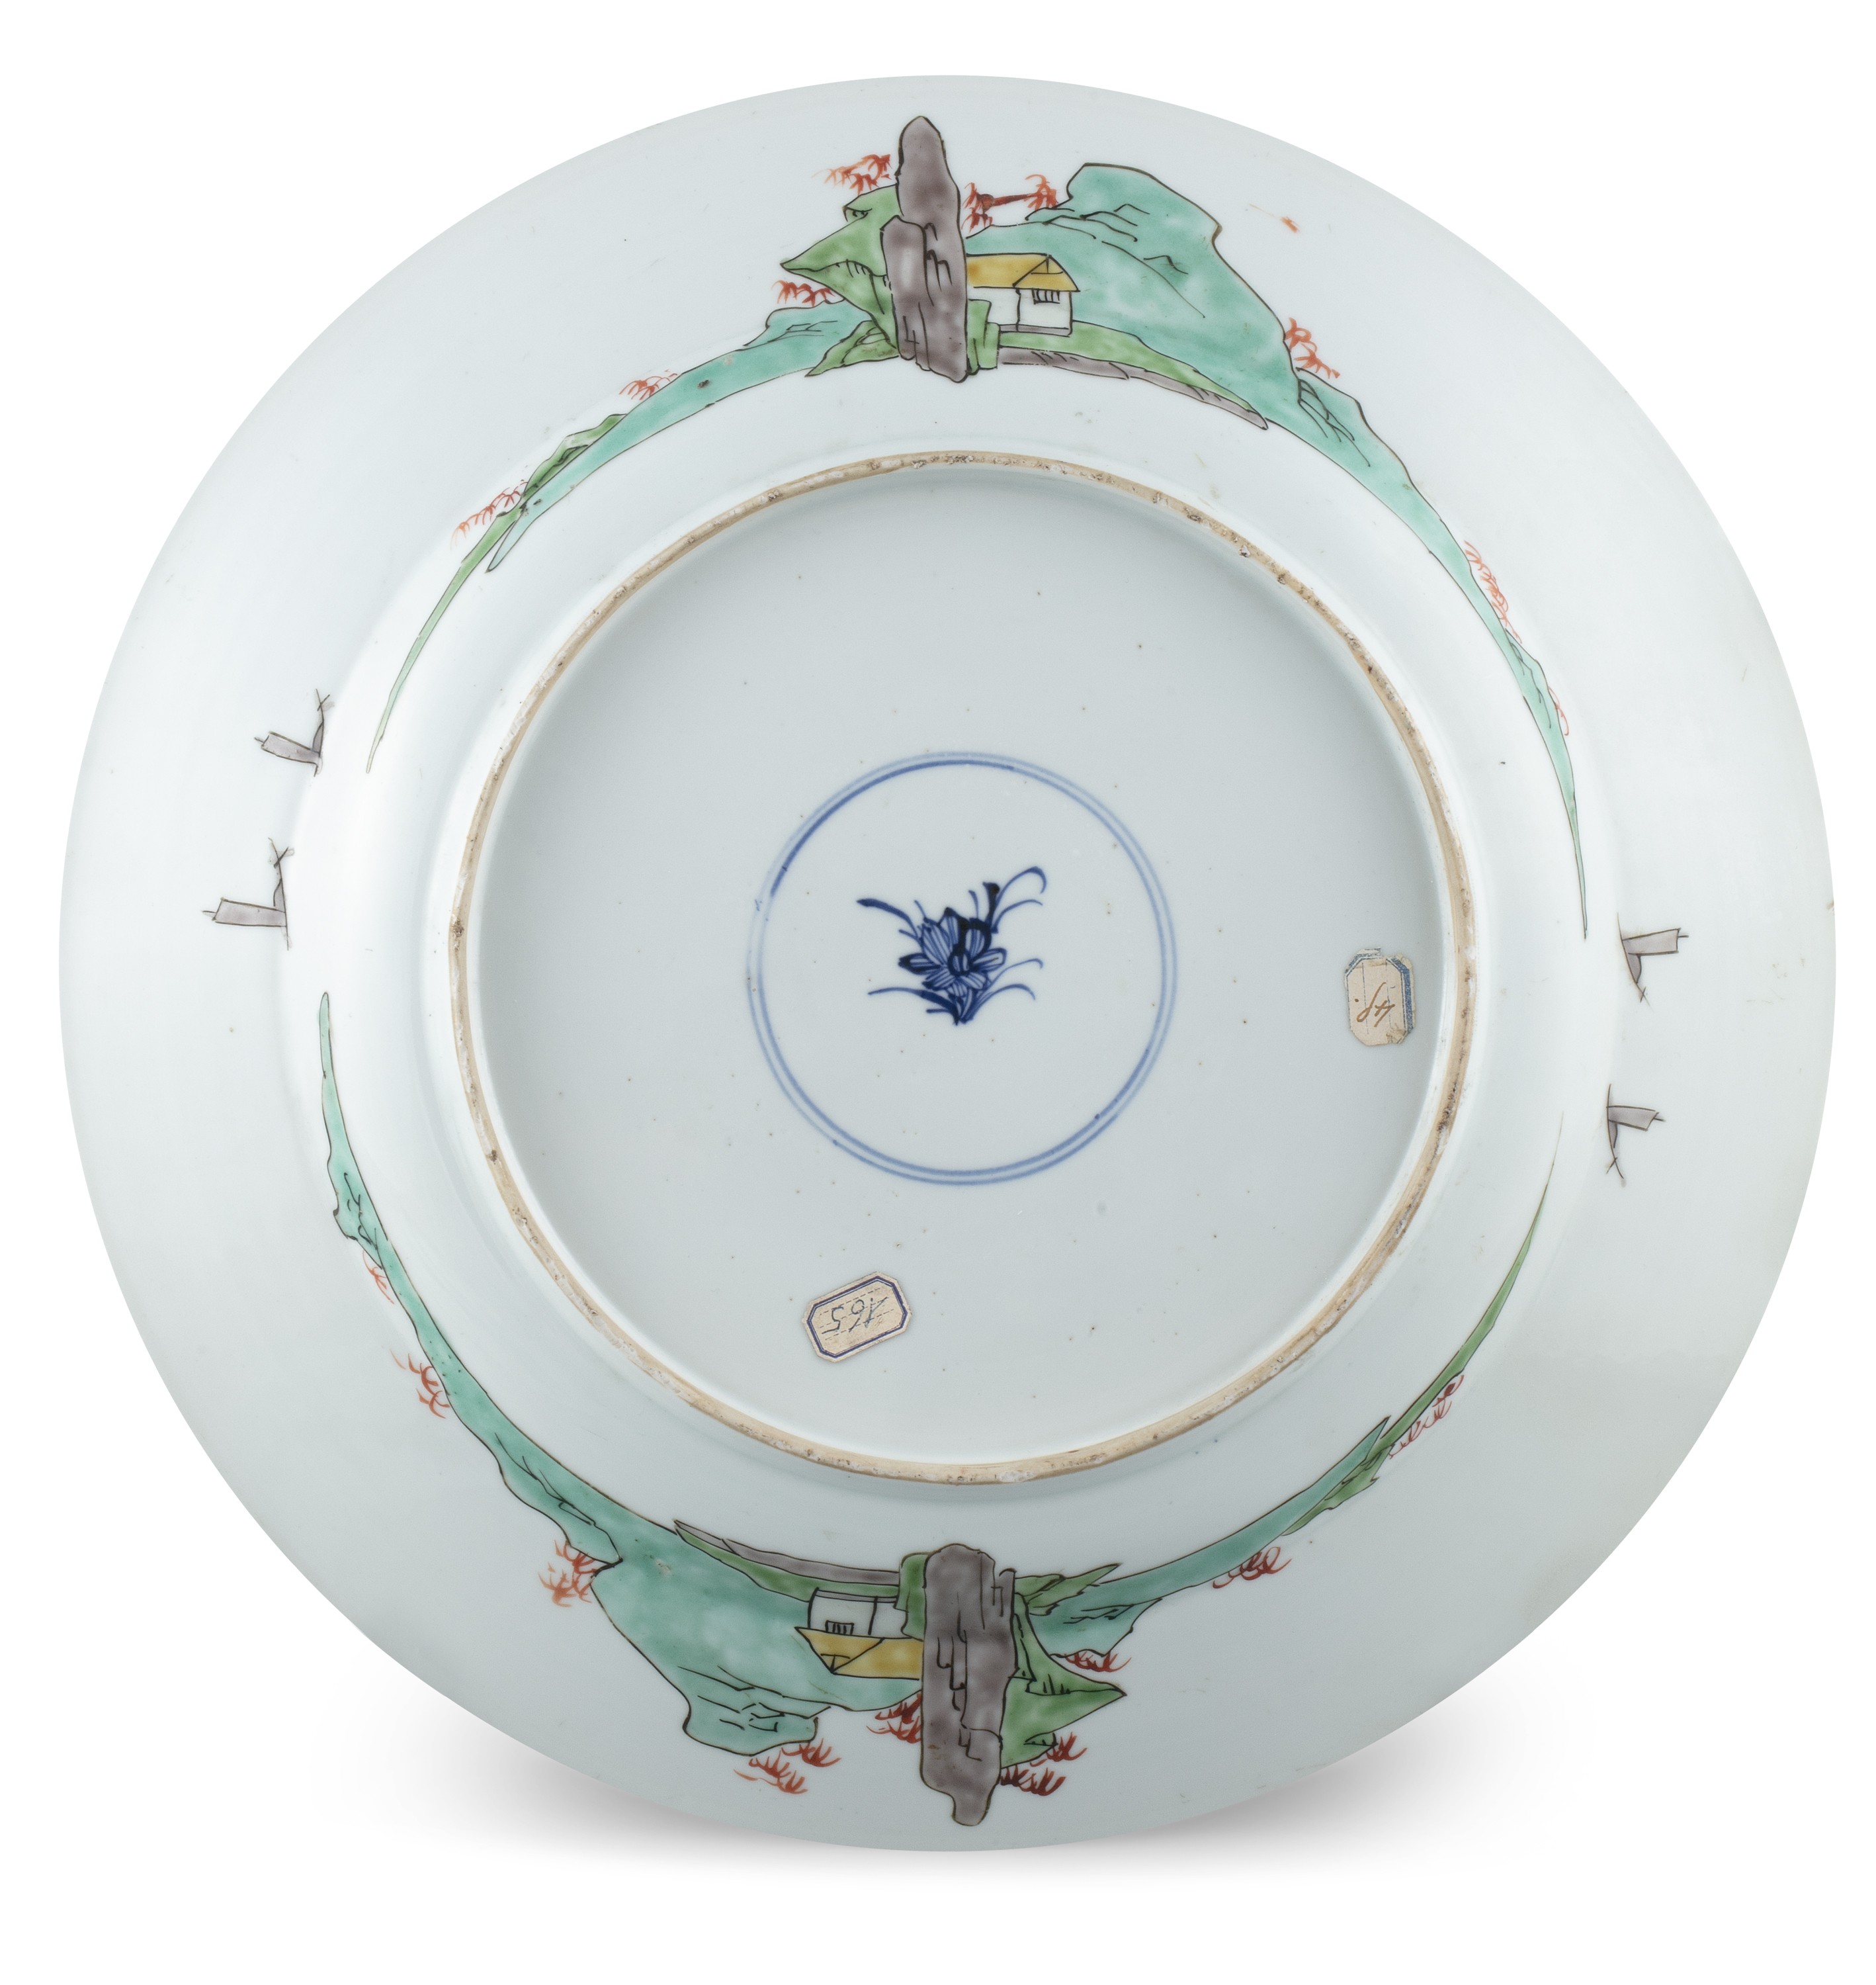 AN IMPORTANT PAIR OF FAMILLE VERTE 'FLYCATCHER AND MAGPIES' PORCELAIN SHALLOW DISHES China, Qing - Image 28 of 35